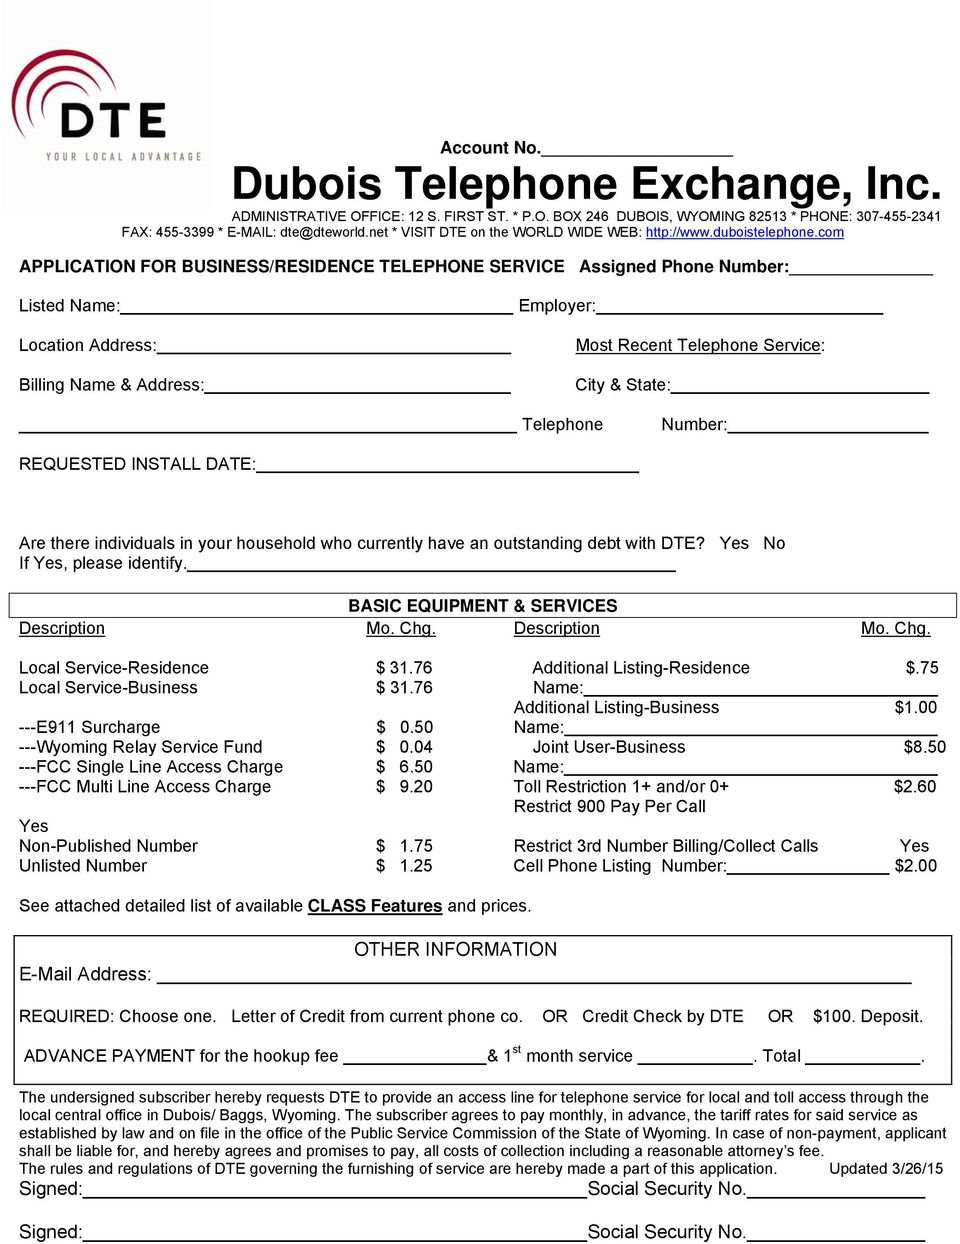 com APPLICATION FOR BUSINESS/RESIDENCE TELEPHONE SERVICE Assigned Phone Number: Listed Name: Employer: Location Address: Billing Name & Address: Most Recent Telephone Service: City & State: Telephone